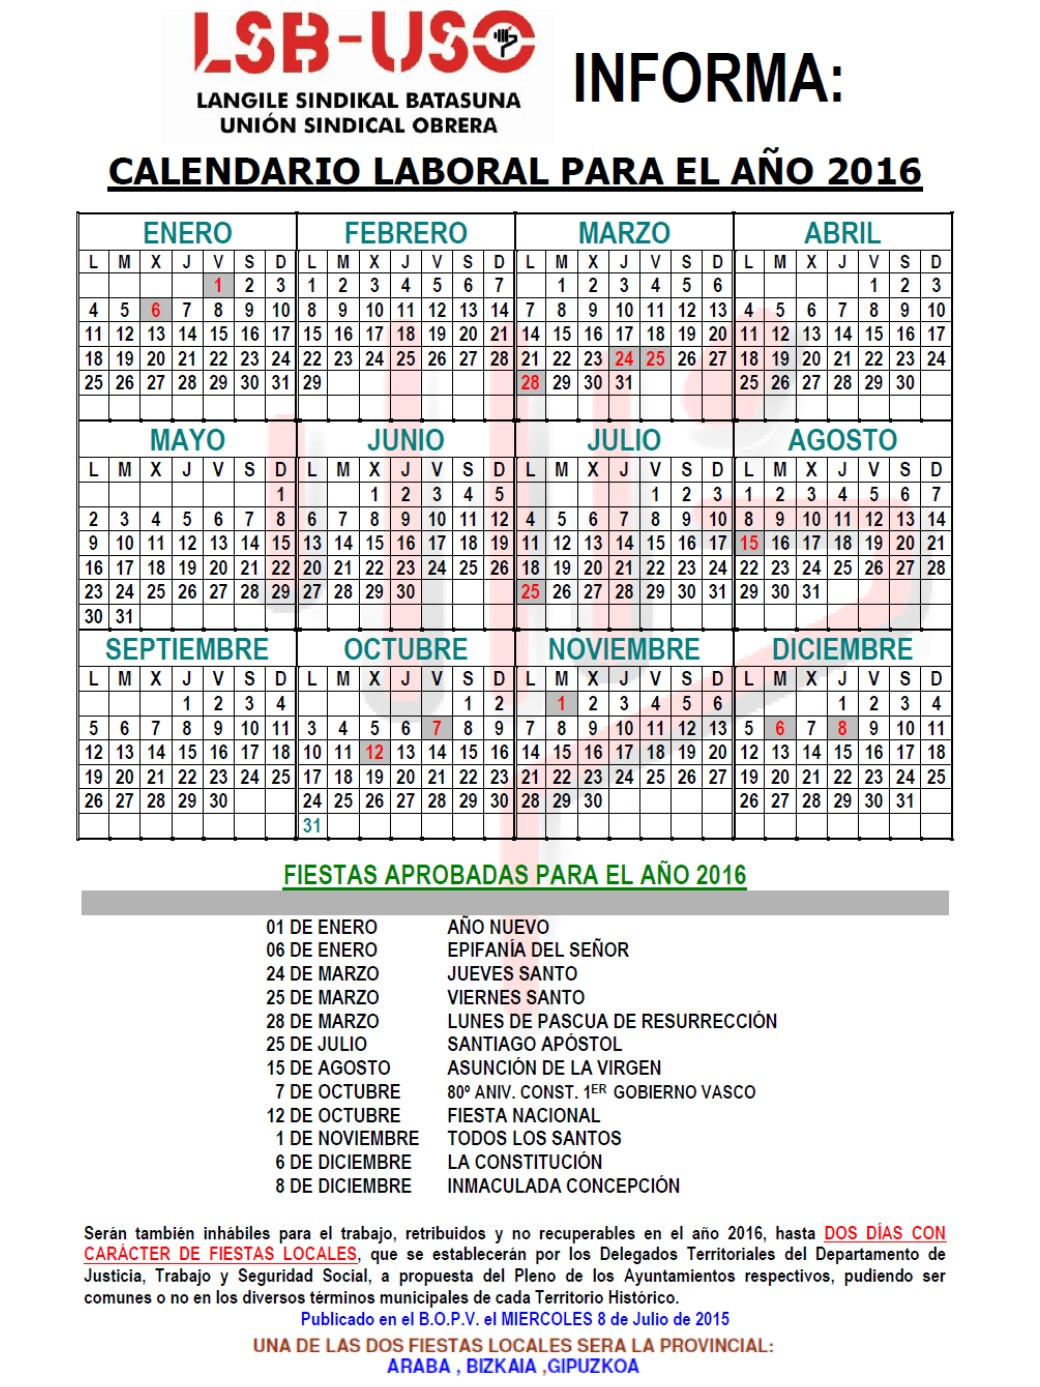 Calendario Laboral Pais Vasco 2019.Calendario Laboral Lsb Uso